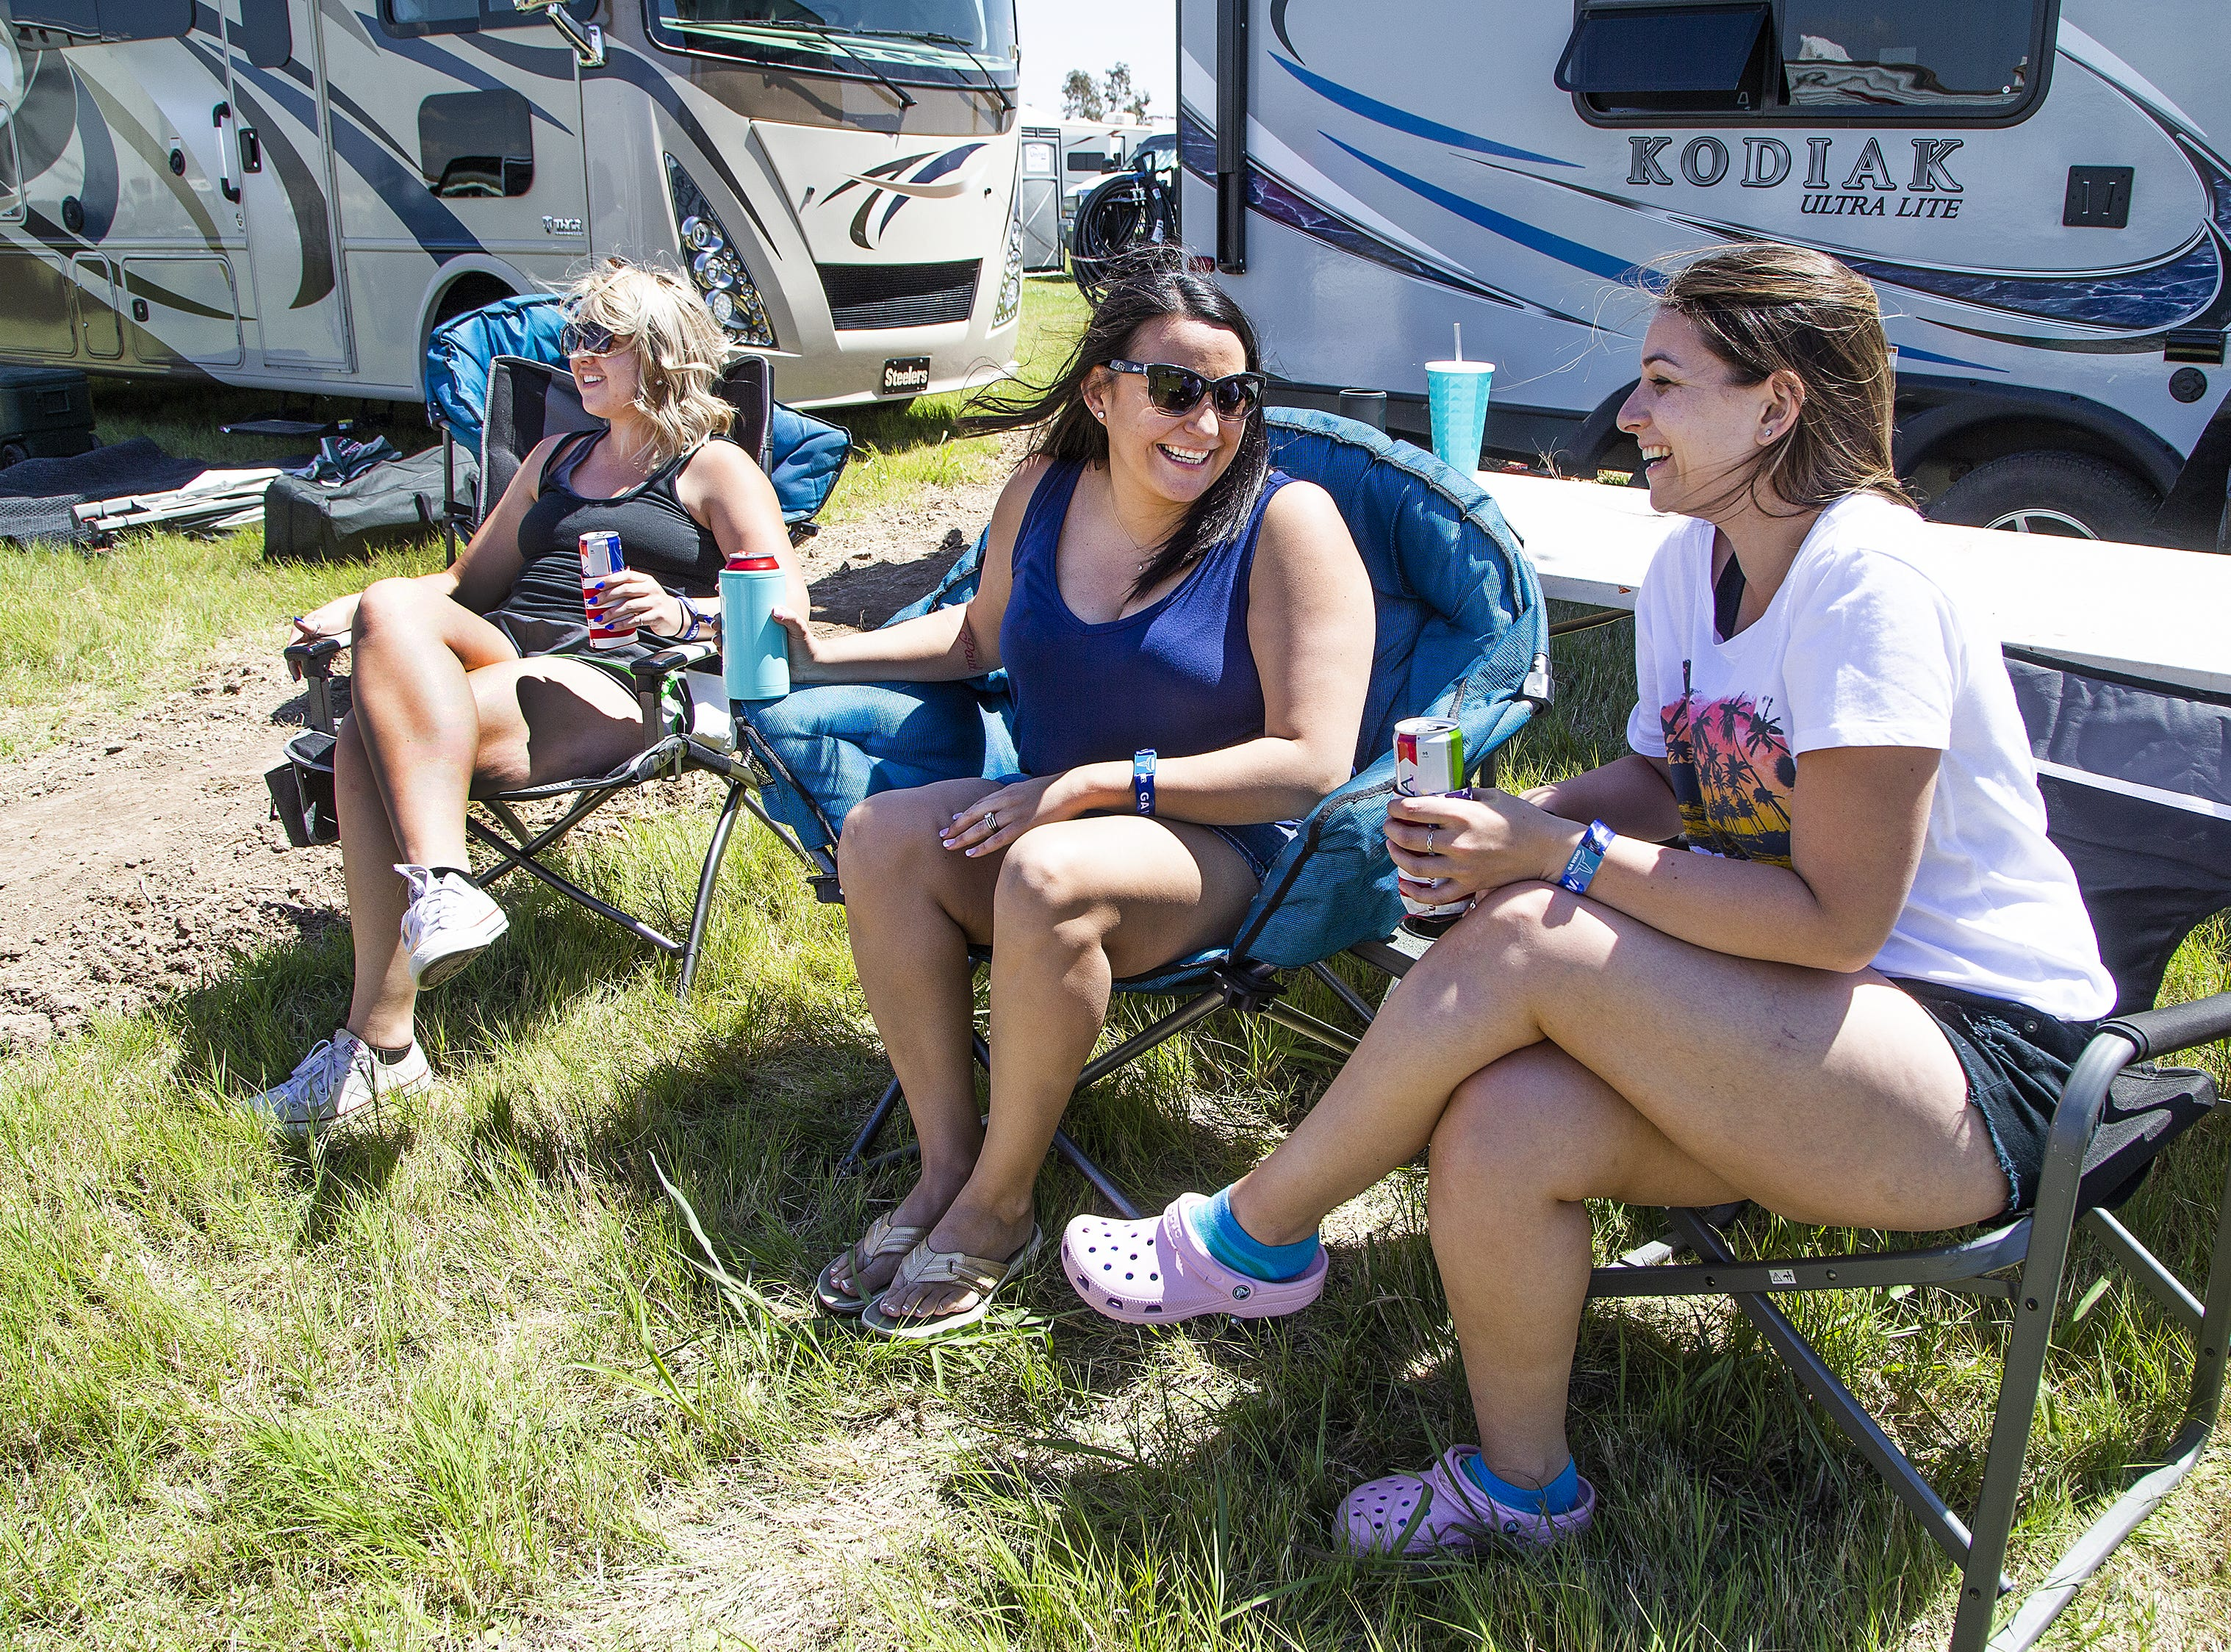 Friends enjoy a cold beer after setting up their camping site at the Country Thunder Arizona 2019 music festival outside Florence, April 10, 2019. From left to right are;  Savannah Ulrick, 24, of Gilbert, Brittany Rhoades, 33, of Chandler, and Katie Carlevaris, 23, from Half Moon Bay, California.